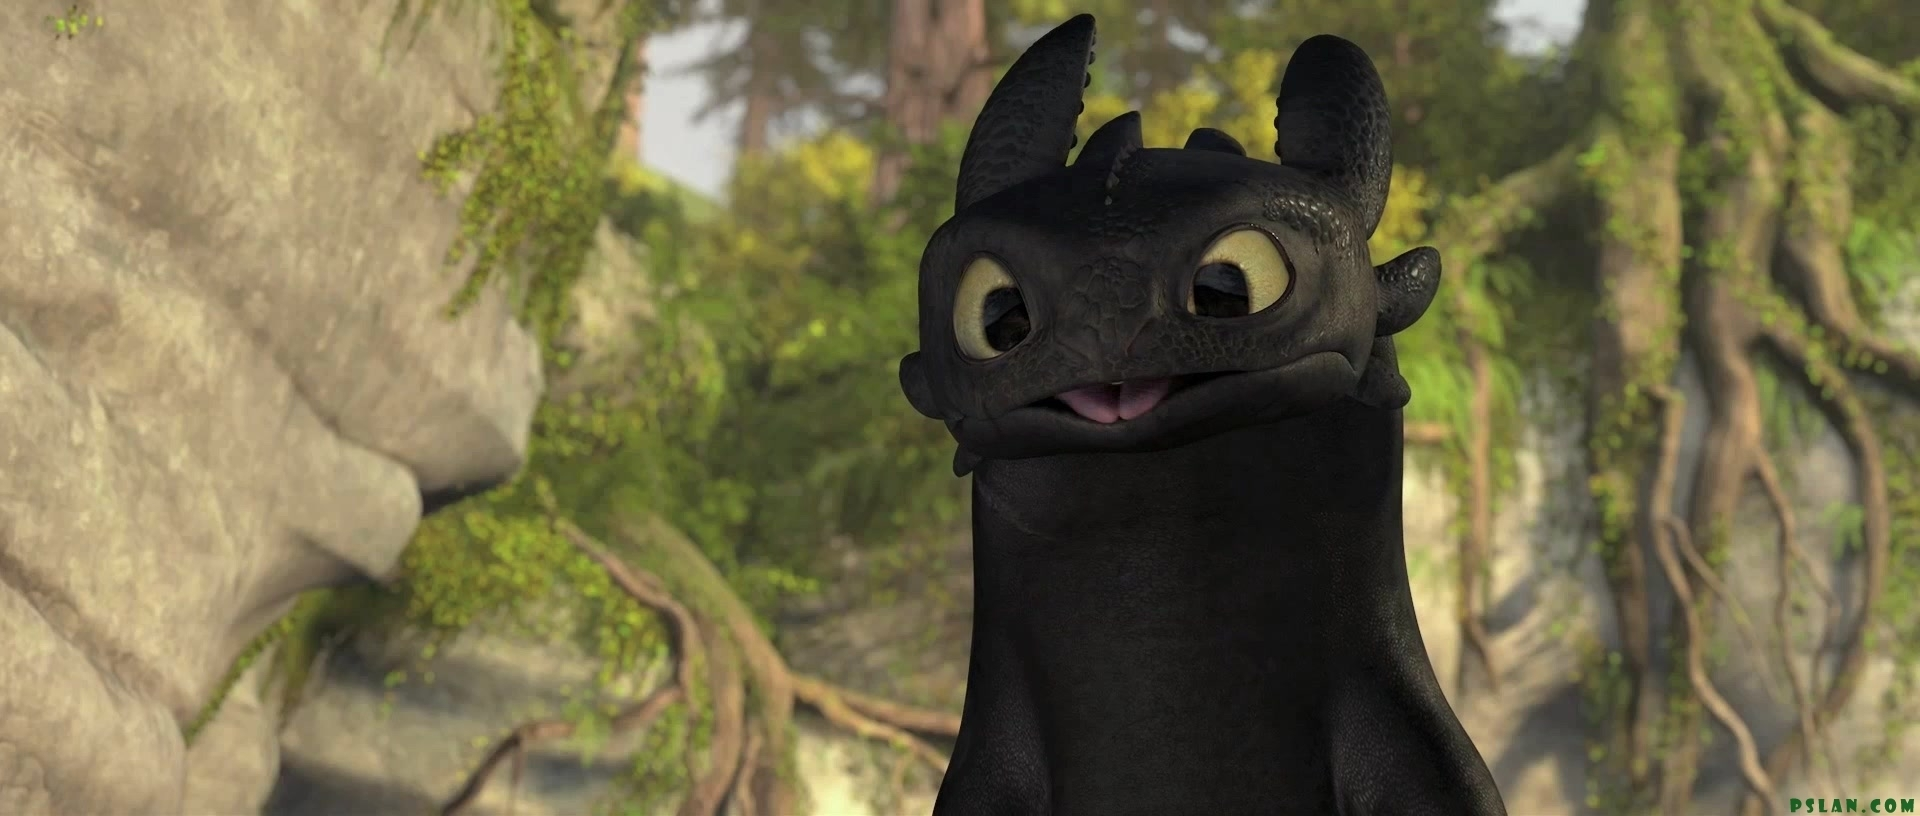 Reader x Toothless (how to train your dragon) Toothless x